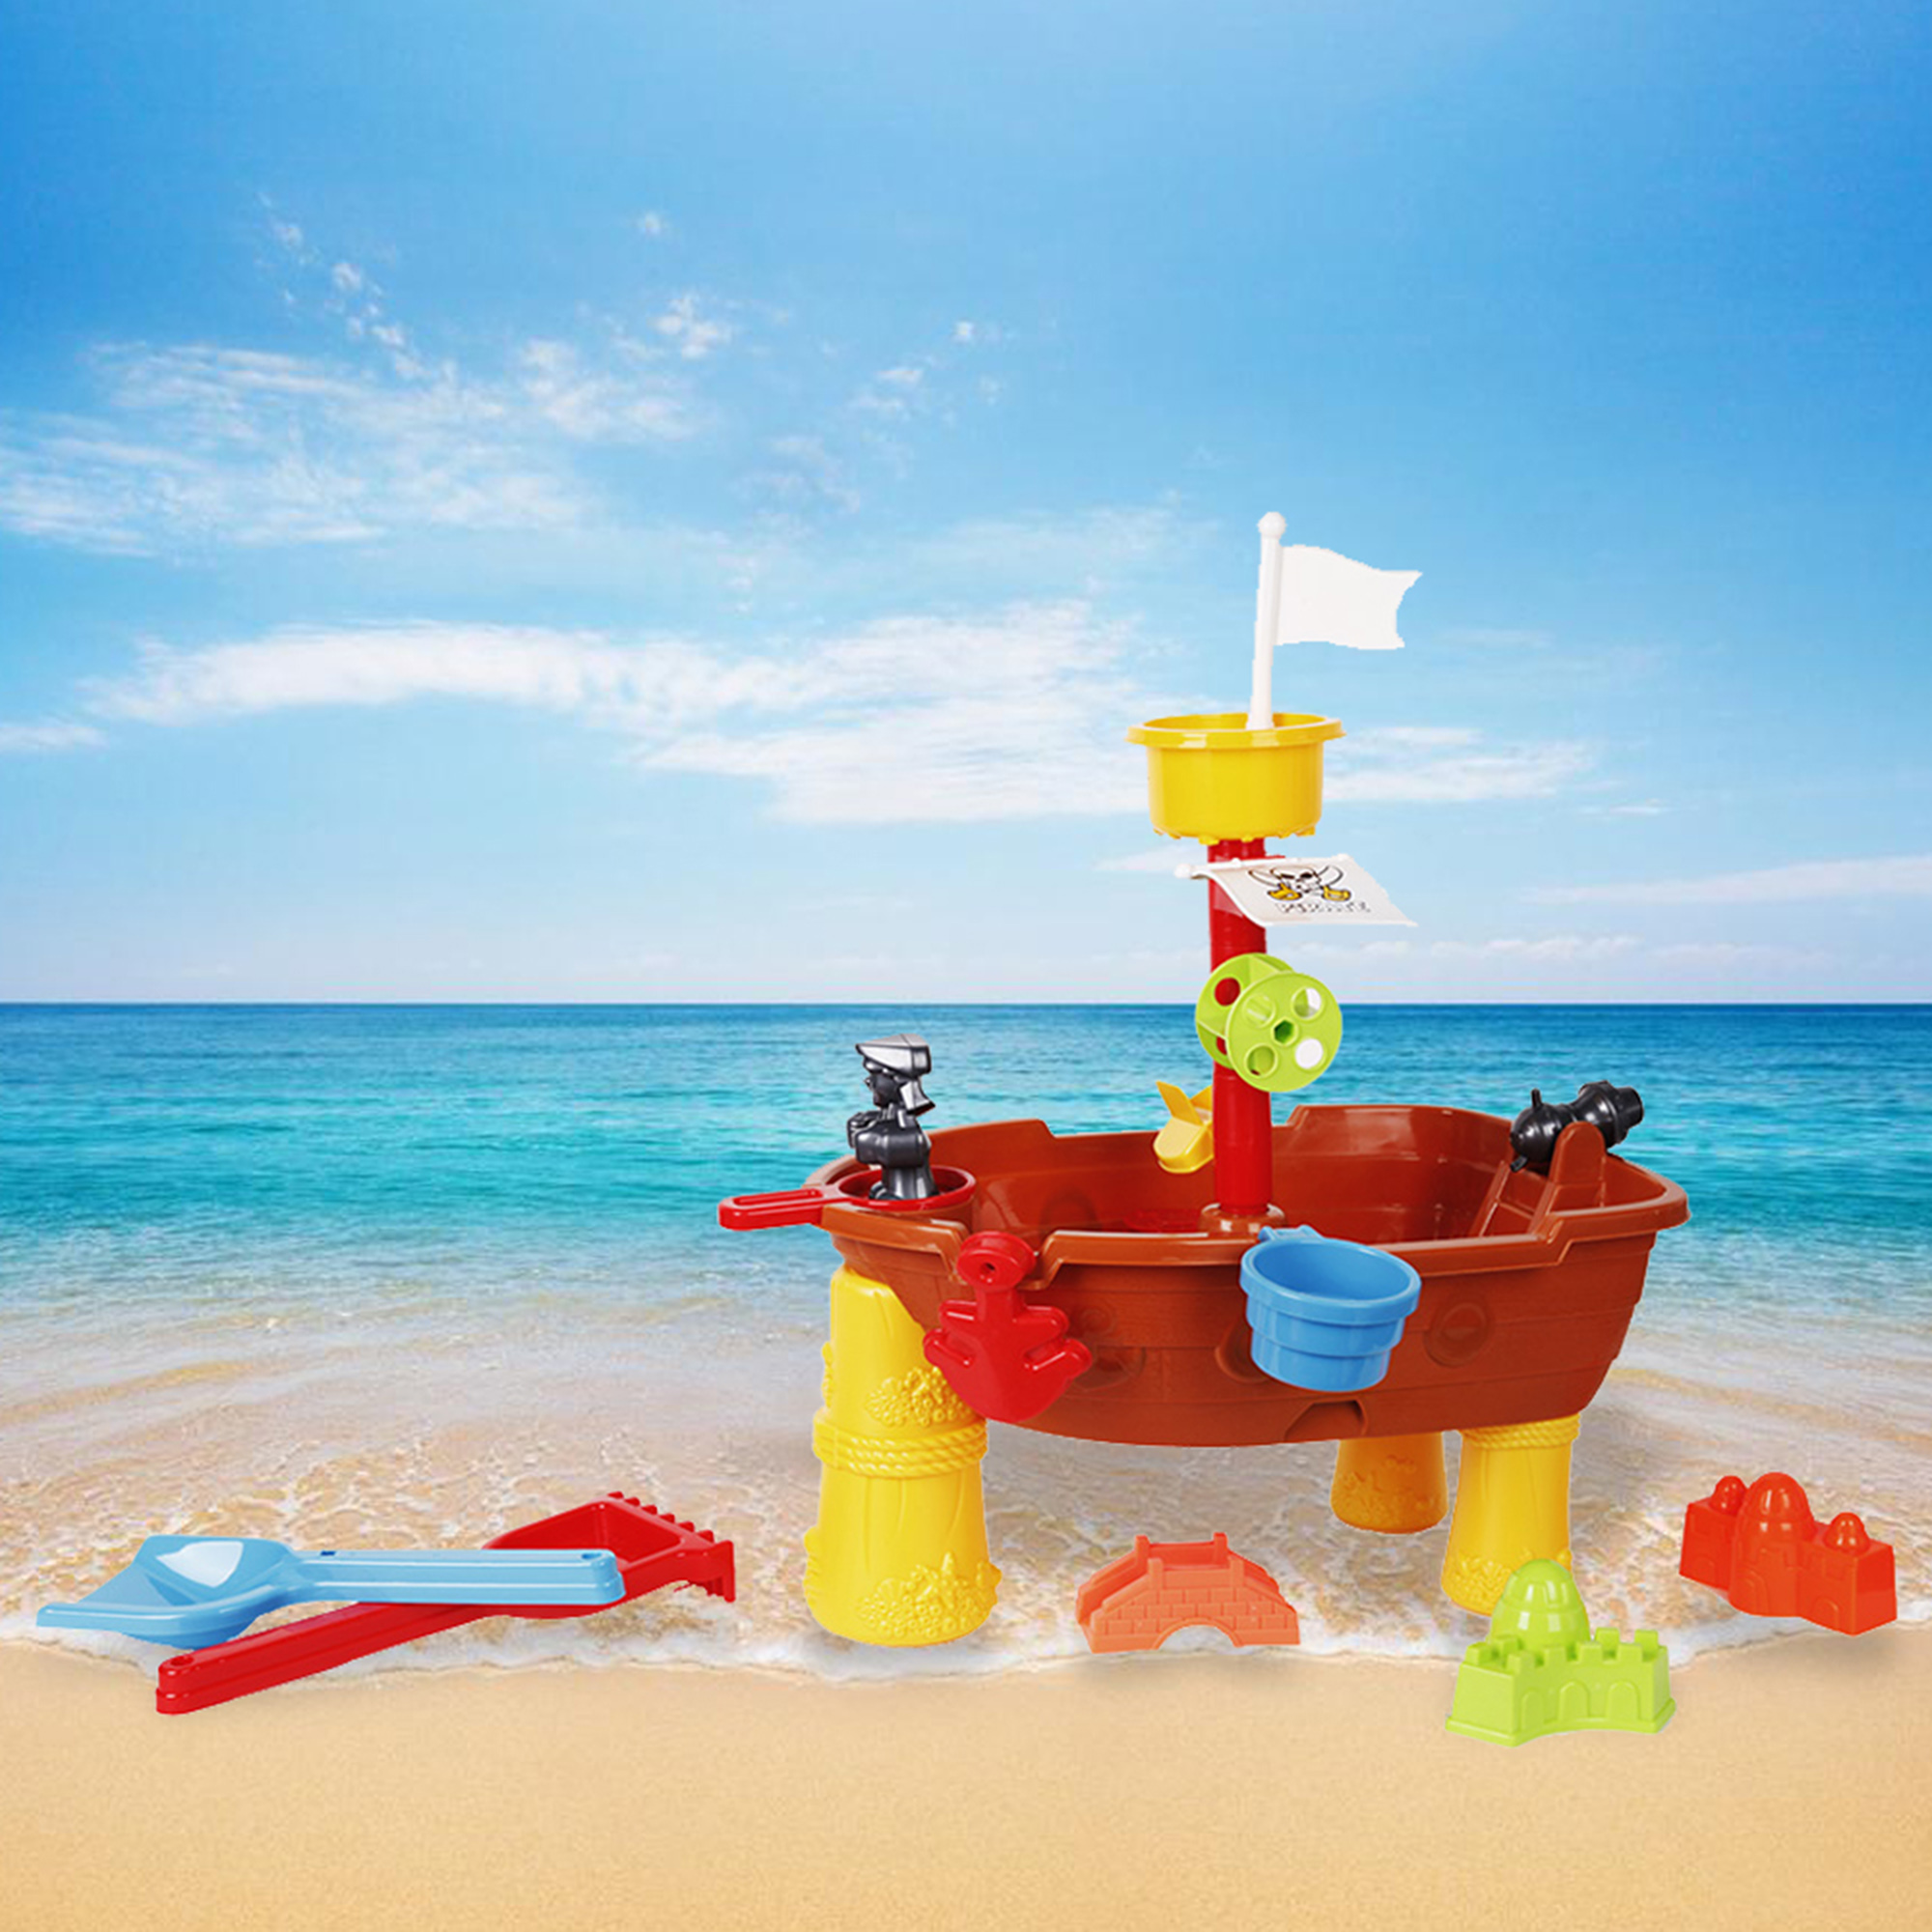 KARMAS PRODUCT Sand Beach Play Toys Summer Watering Sand Play Bath Toys Pirate Ship for Children by KARMAS PRODUCT